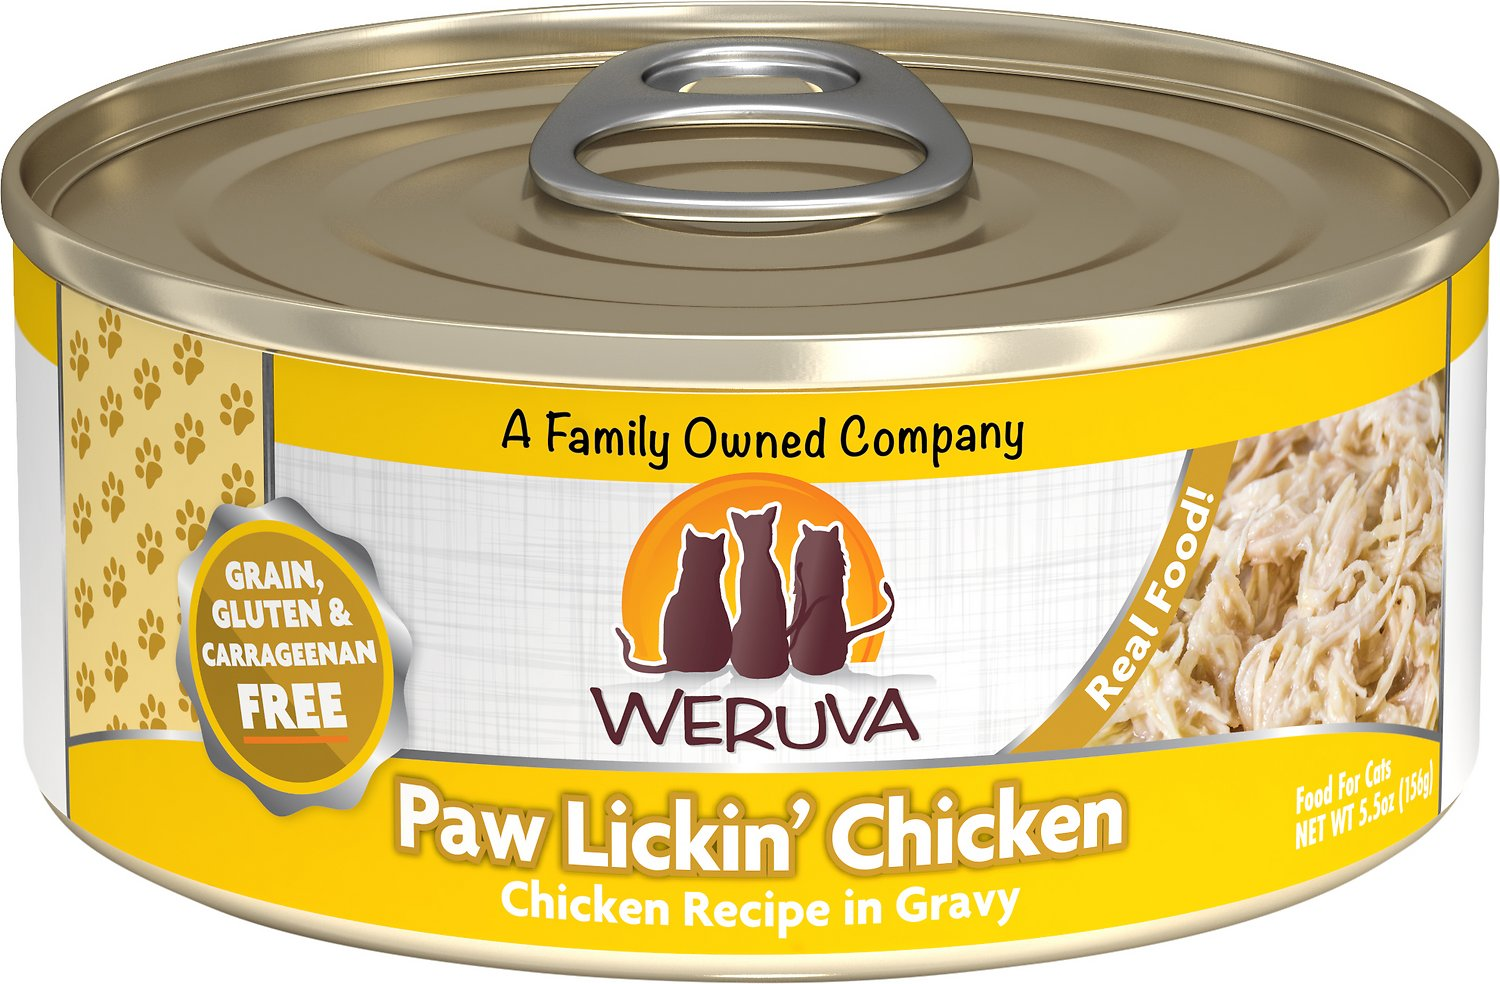 Weruva Cat Classic Paw Lickin' Chicken in Gravy Grain-Free Wet Cat Food, 5.5-oz Size: 5.5-oz